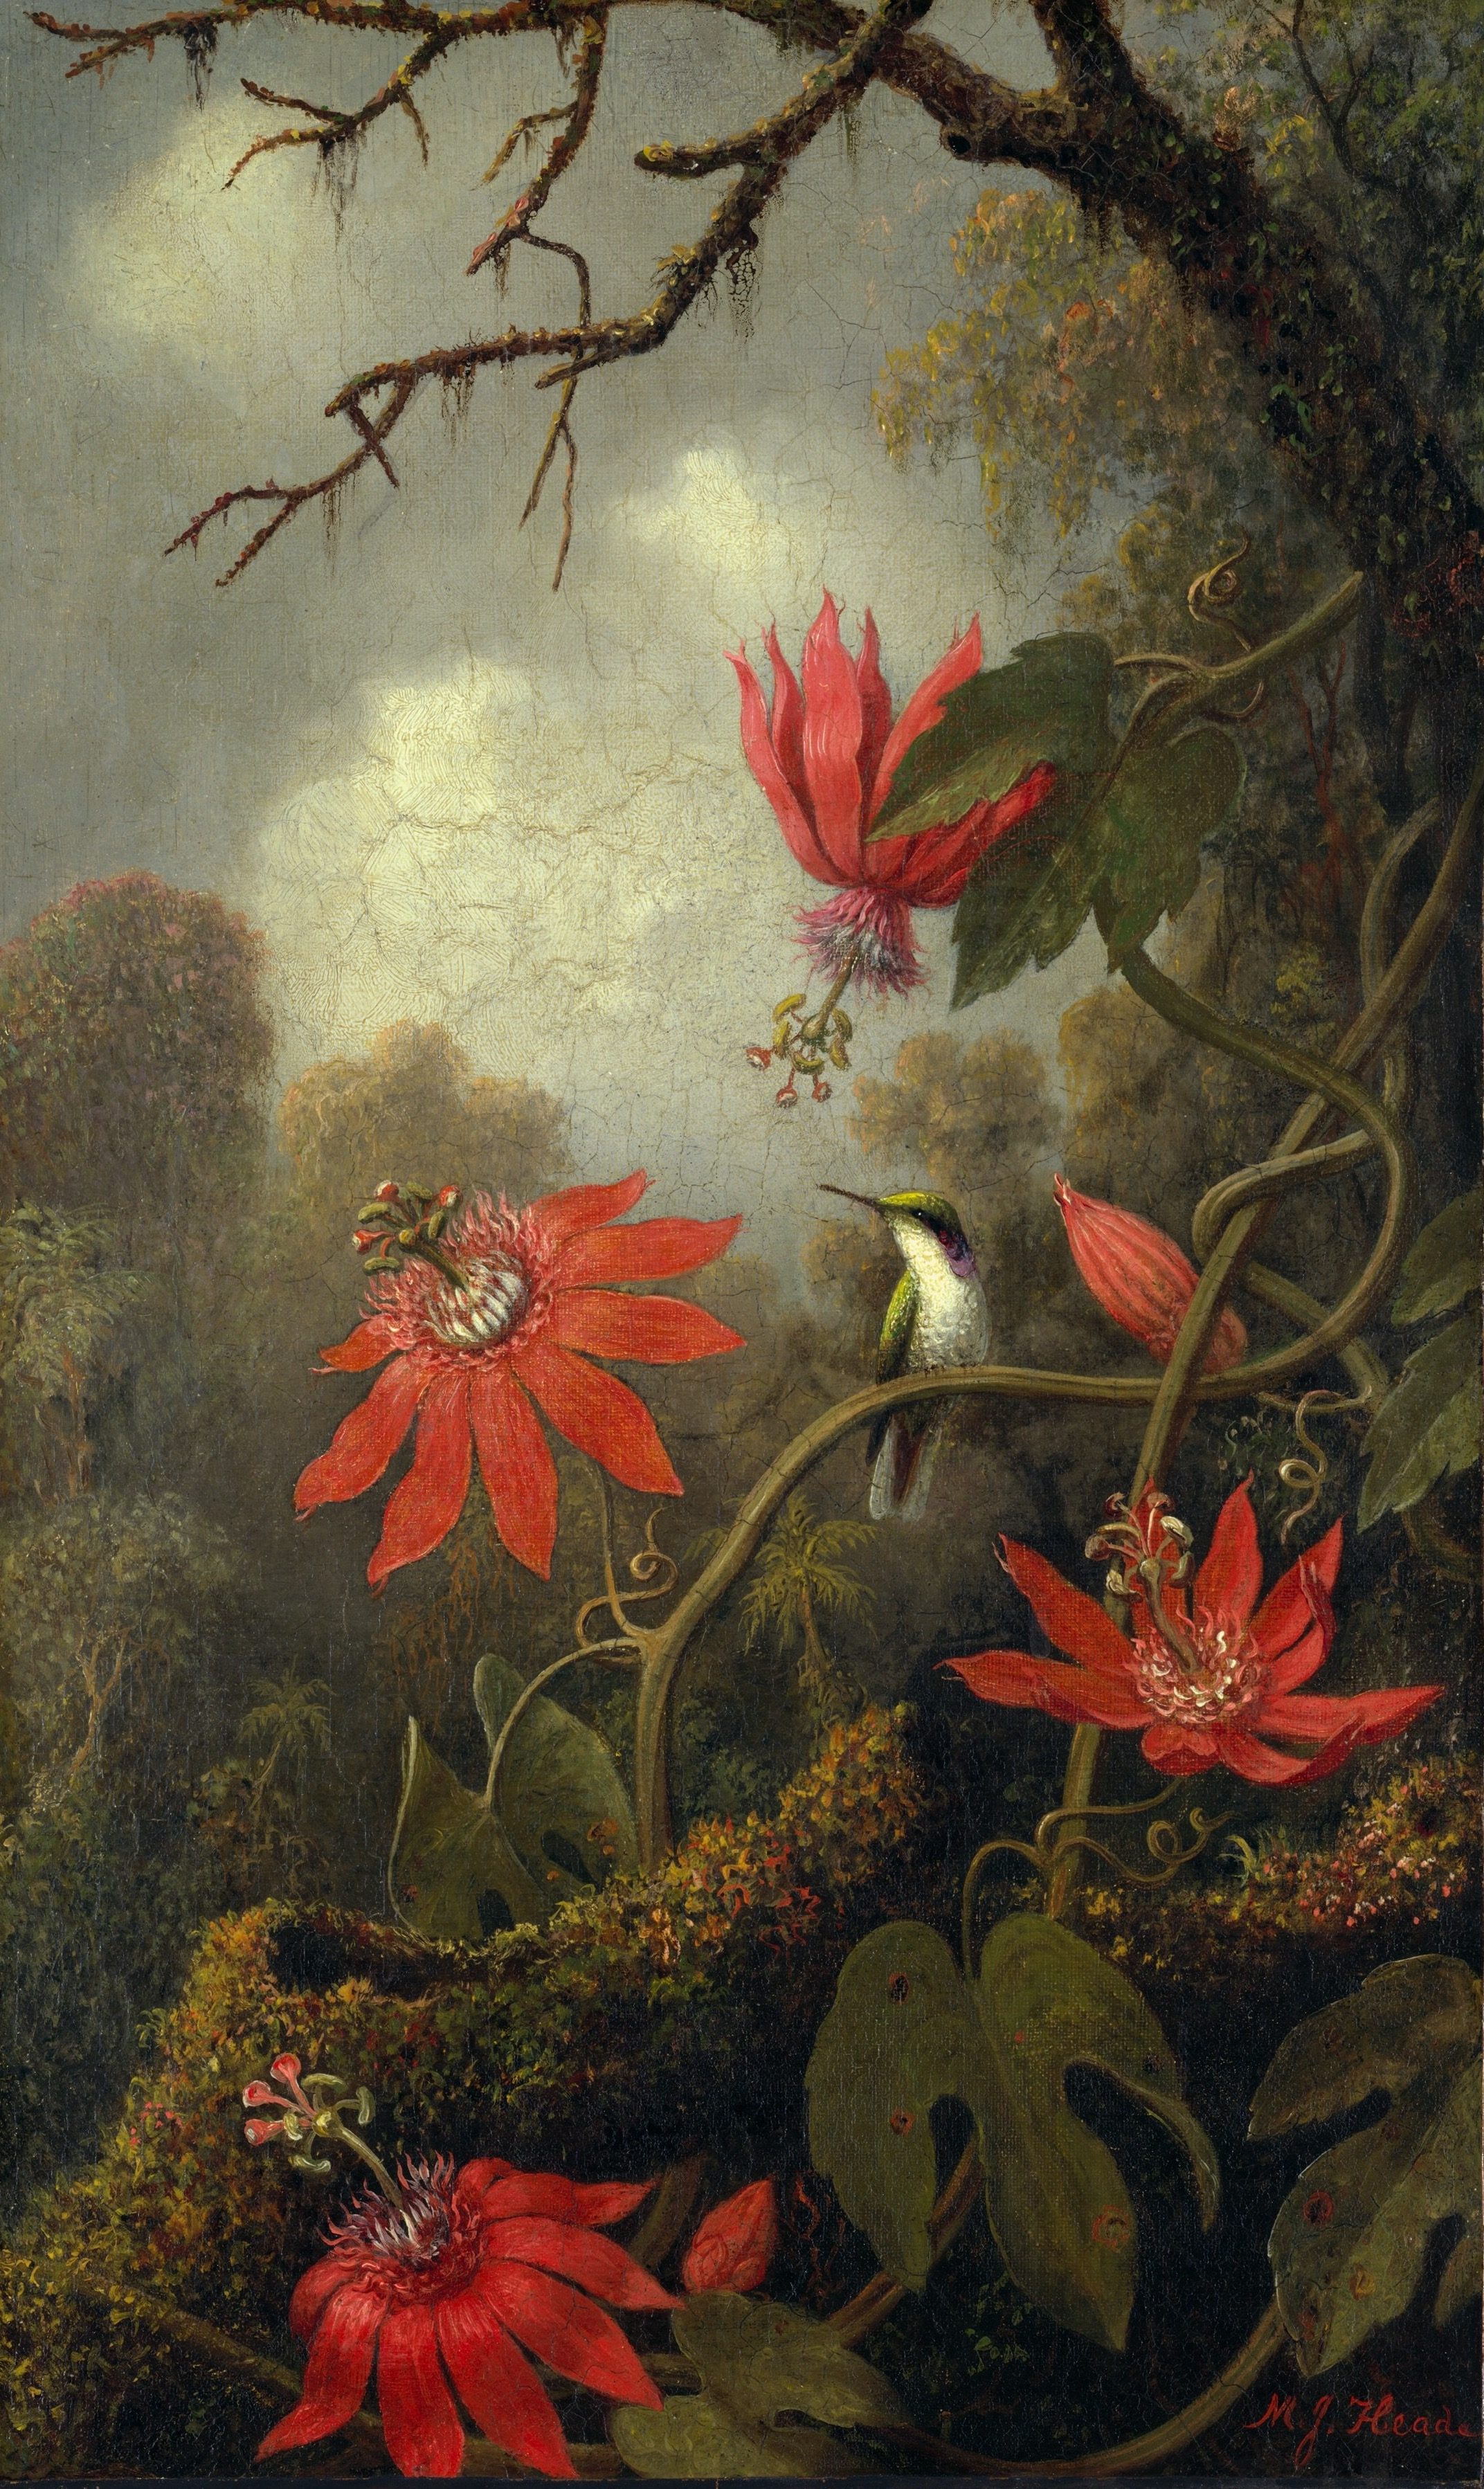 Hummingbird and Passionflowers, by Martin Johnson Heade, circa 1875, by The Met